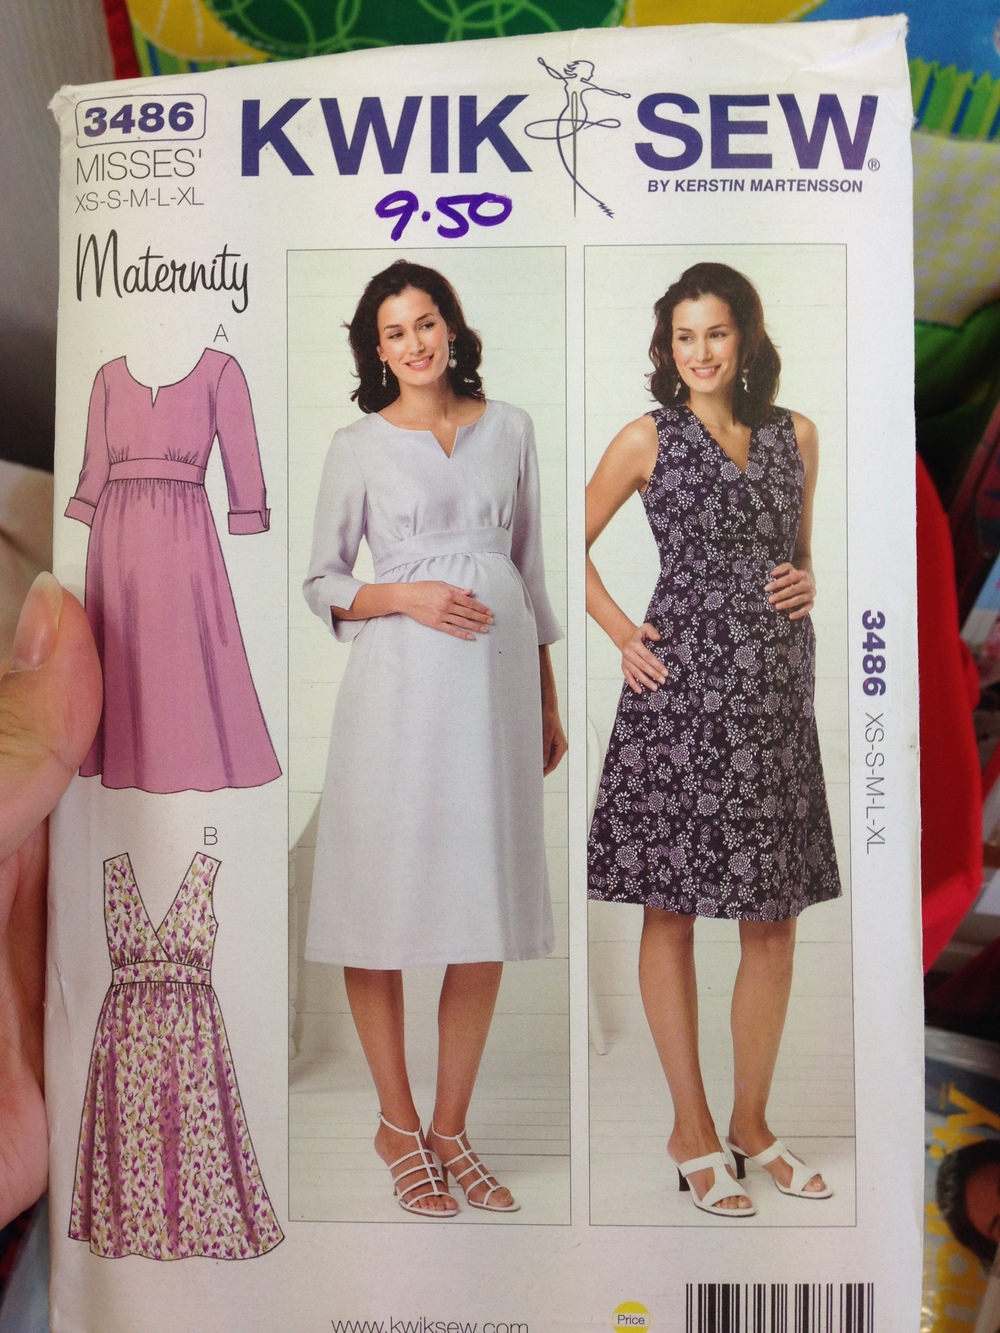 KwikSew 3486: maternity dress or cute empire waist? Surely this can be a thing.